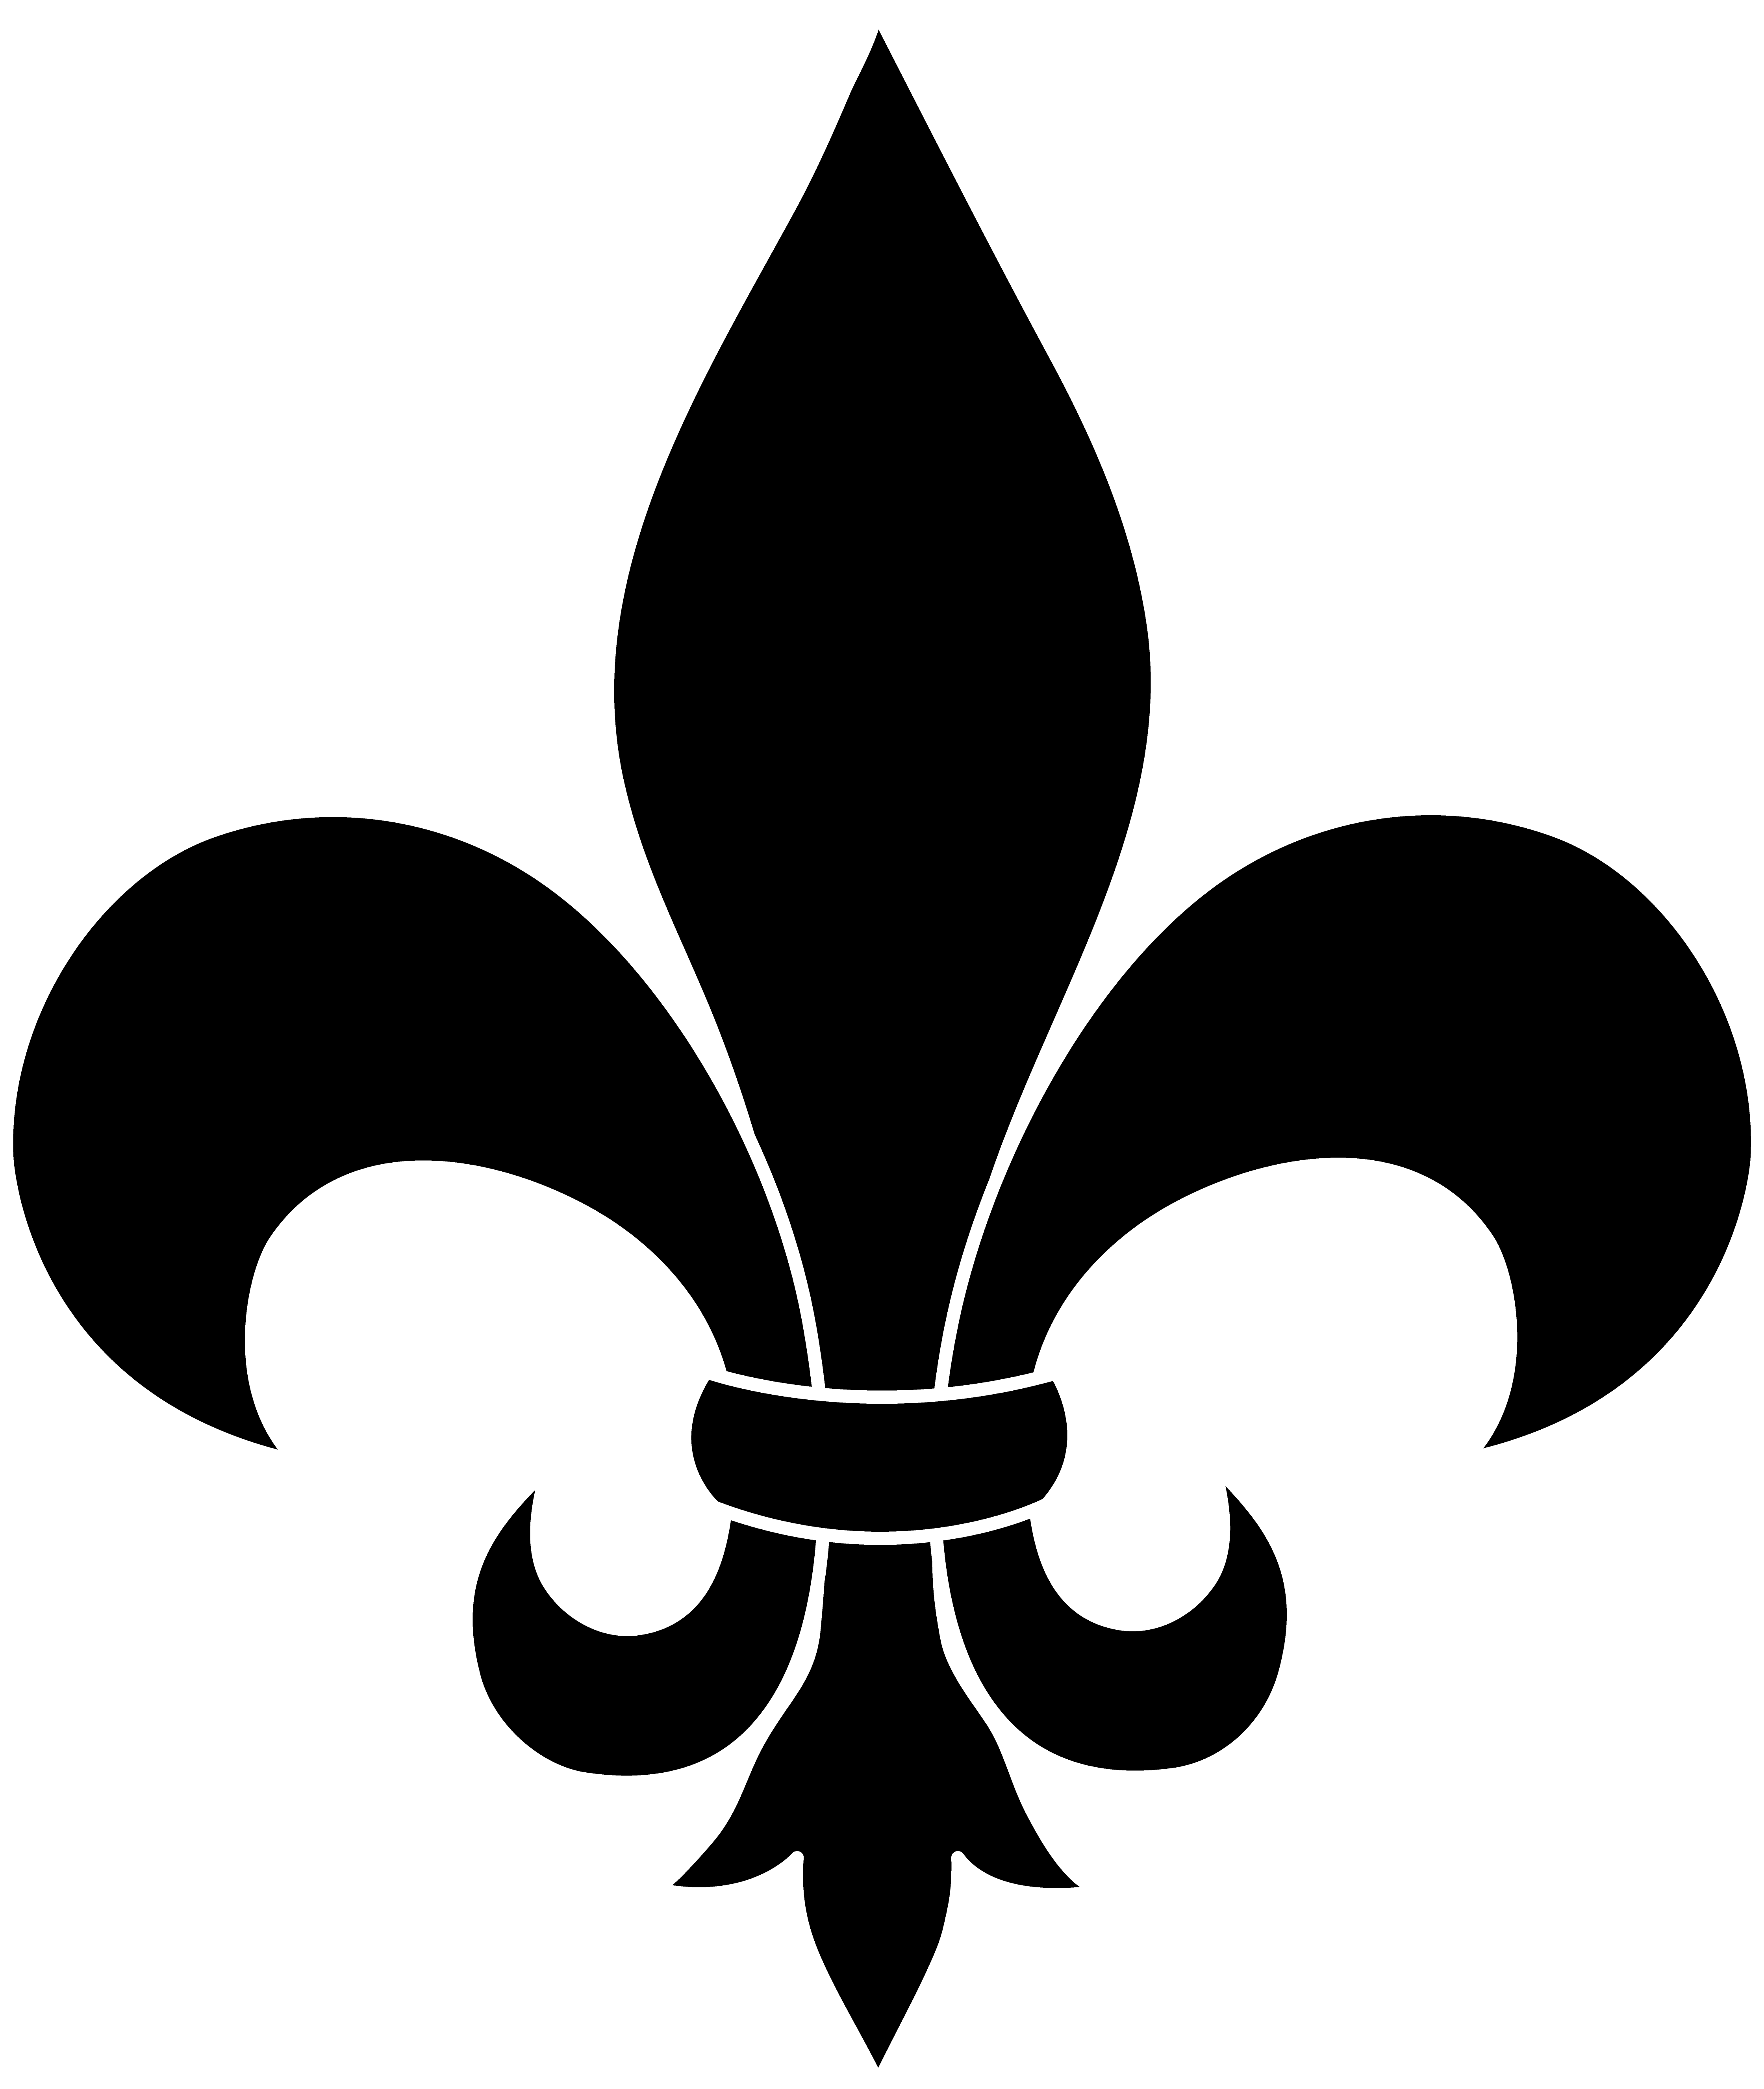 hight resolution of frrench free clip art black fleur de lis silhouette for flyer